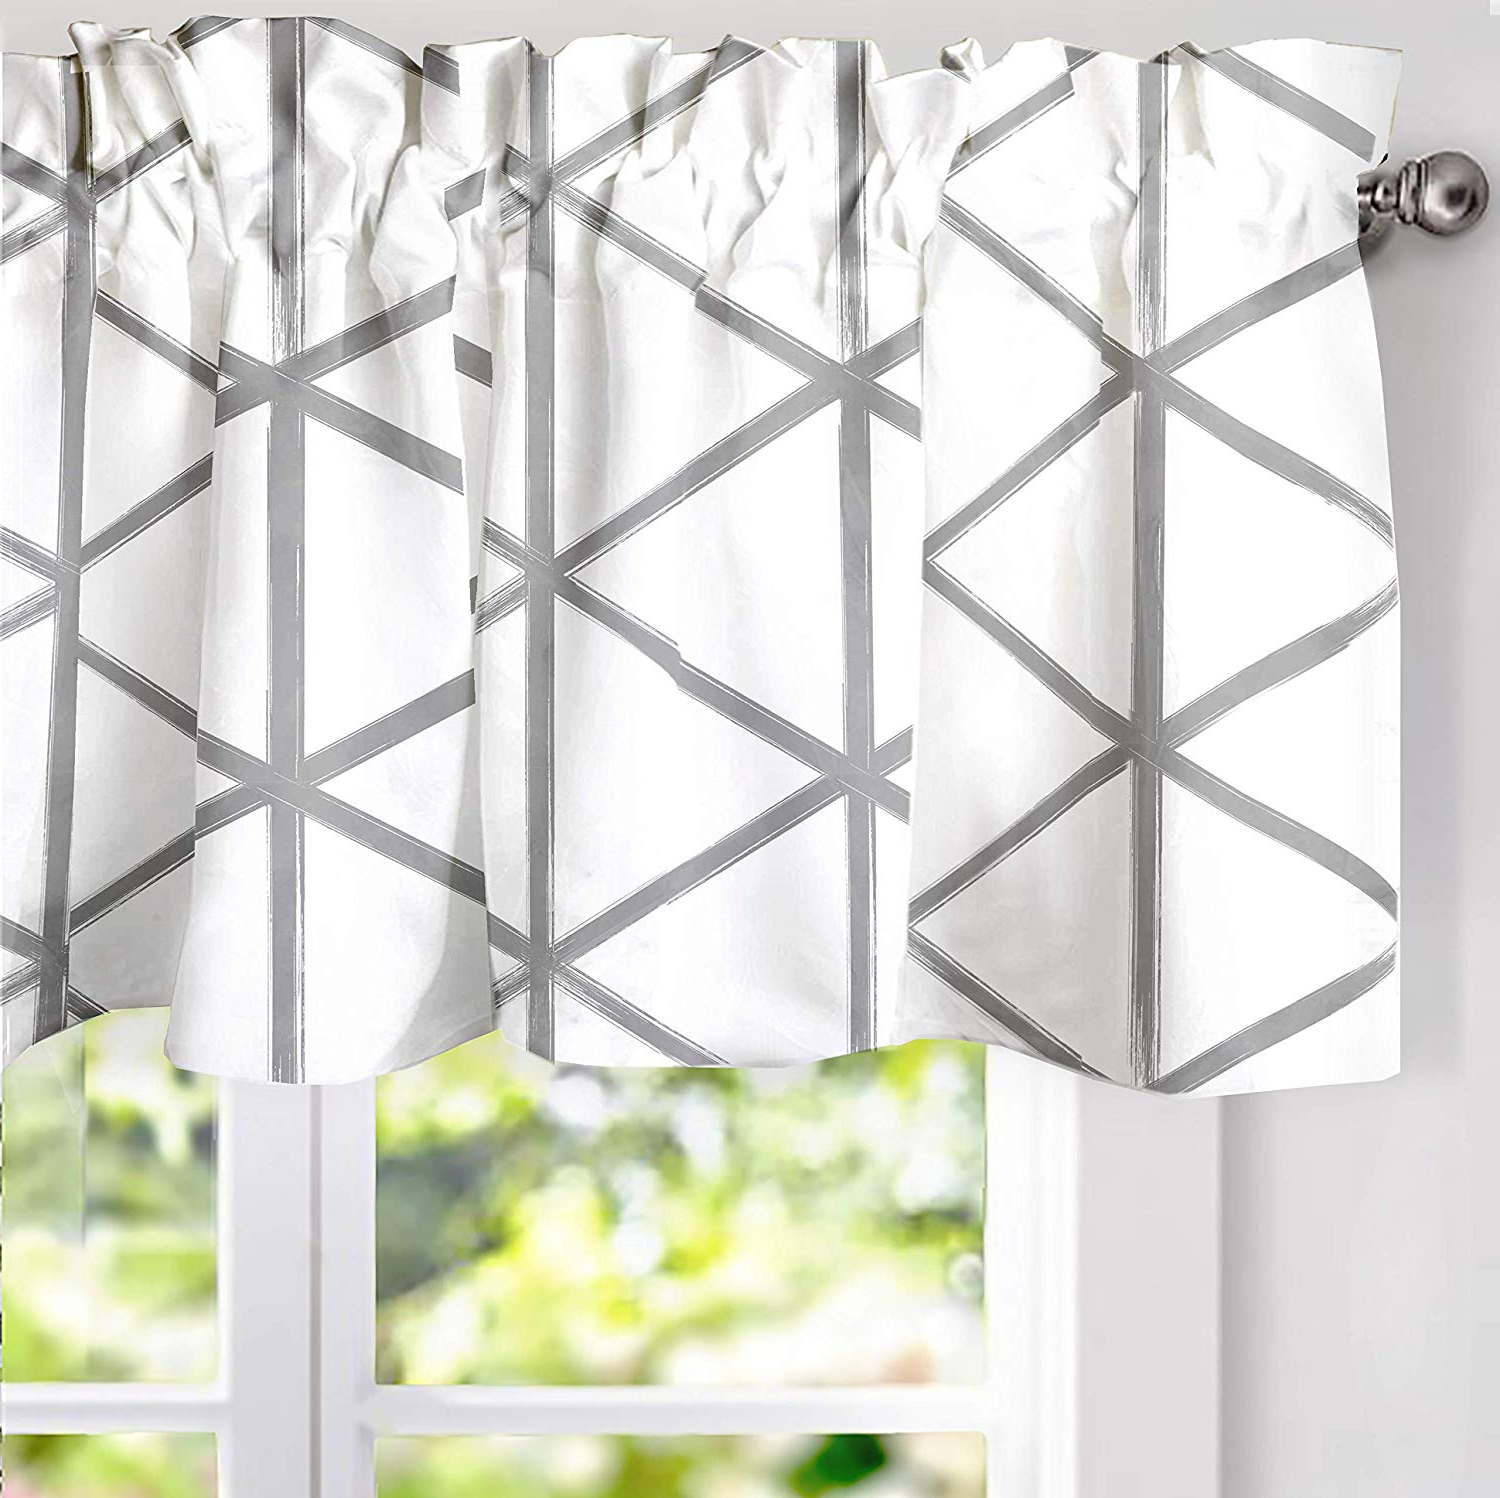 Driftaway Raymond Geometric Triangle Trellis Pattern Lined Thermal Insulated Energy Saving Window Curtain Valance For Living Room, 2 Layer, Rod Throughout Preferred Trellis Pattern Window Valances (View 12 of 20)